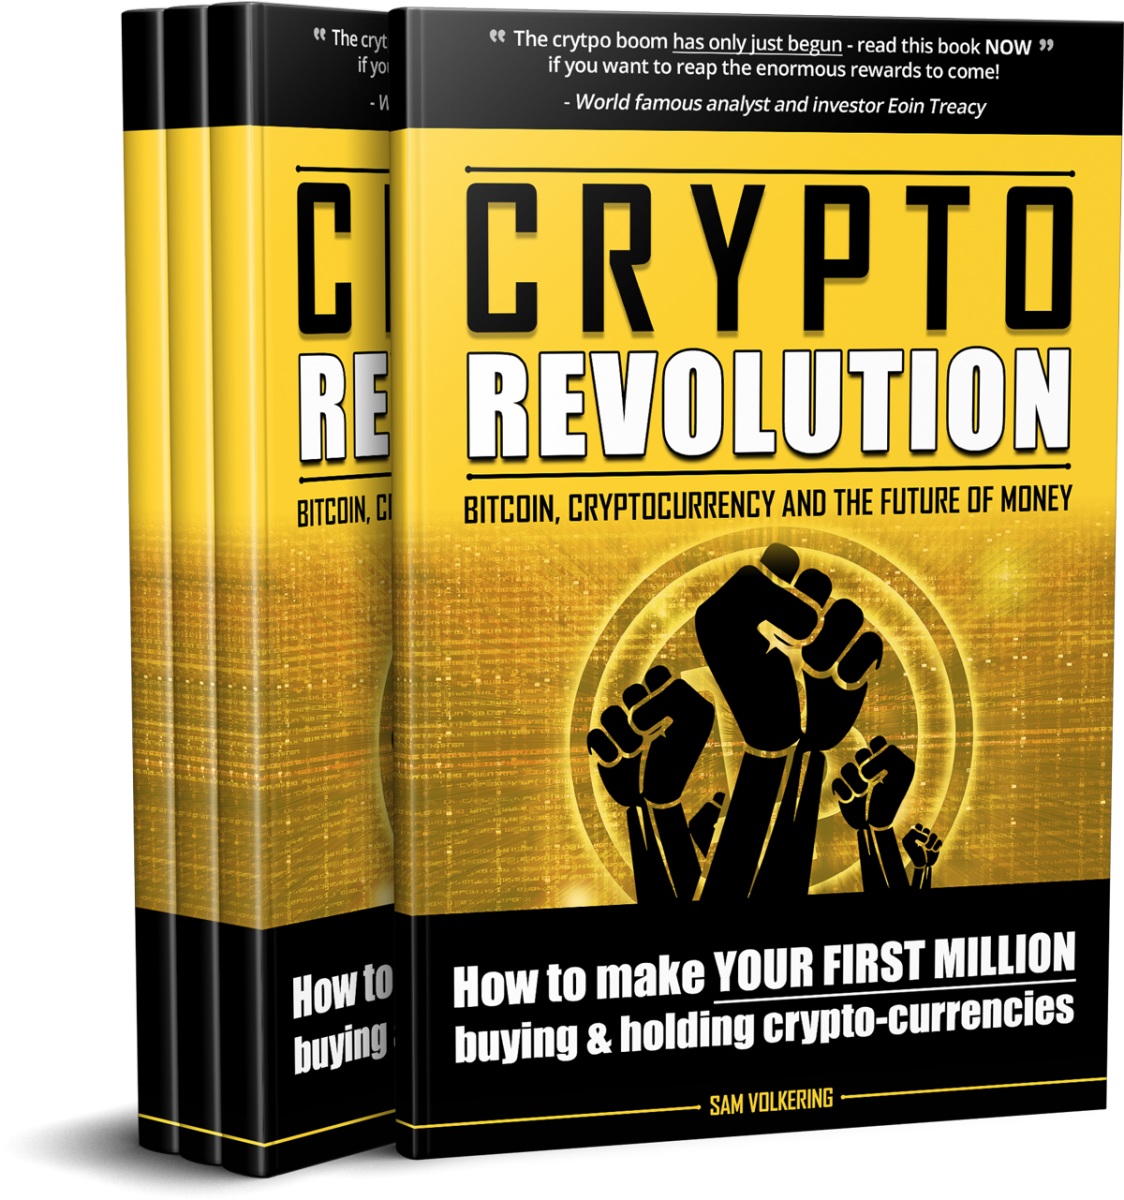 Coin revolution book